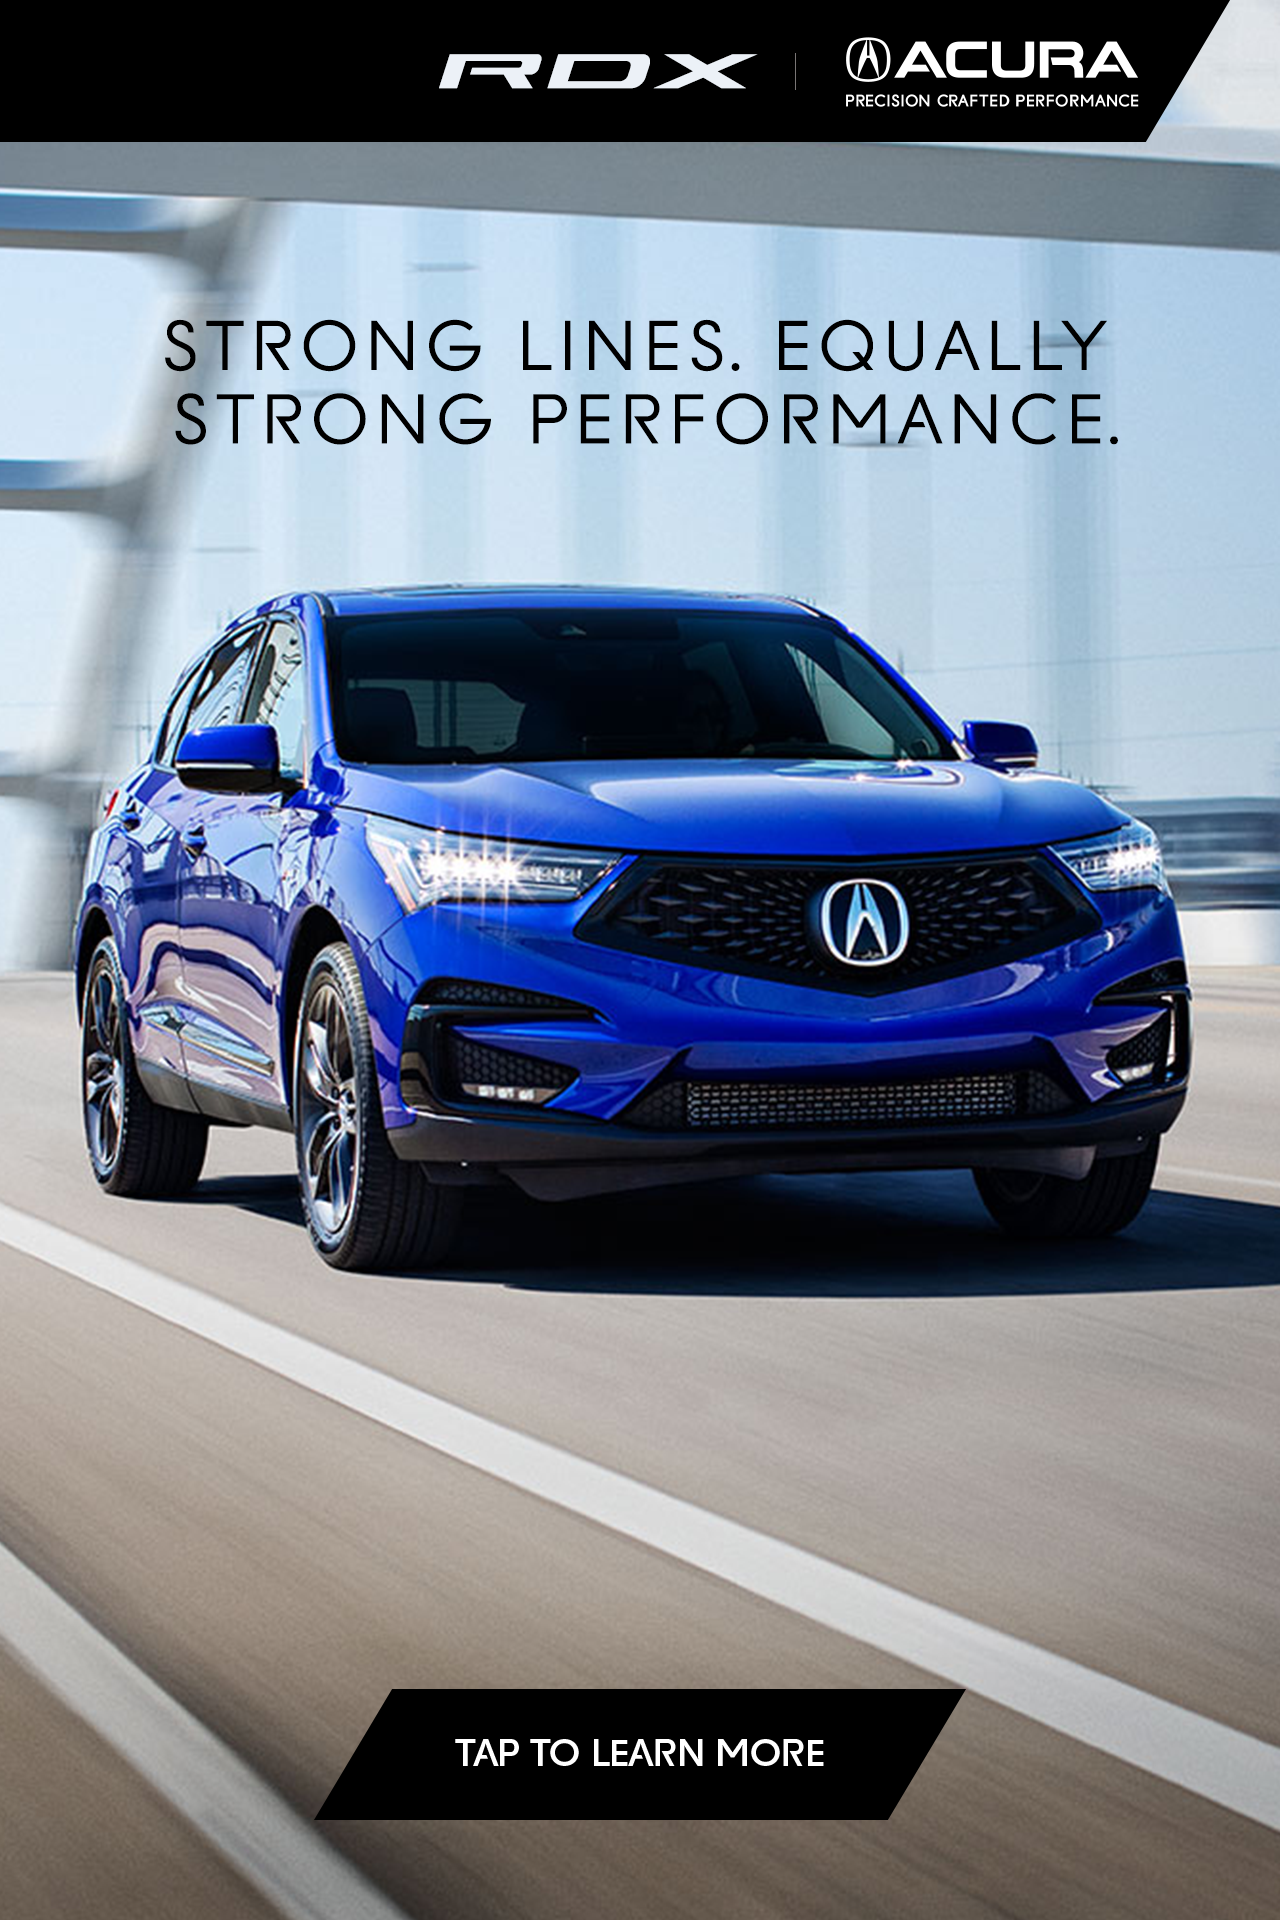 The 2020 Acura Rdx Strong Lines Equally Strong Performance Custom Muscle Cars Bmw Suv Futuristic Cars